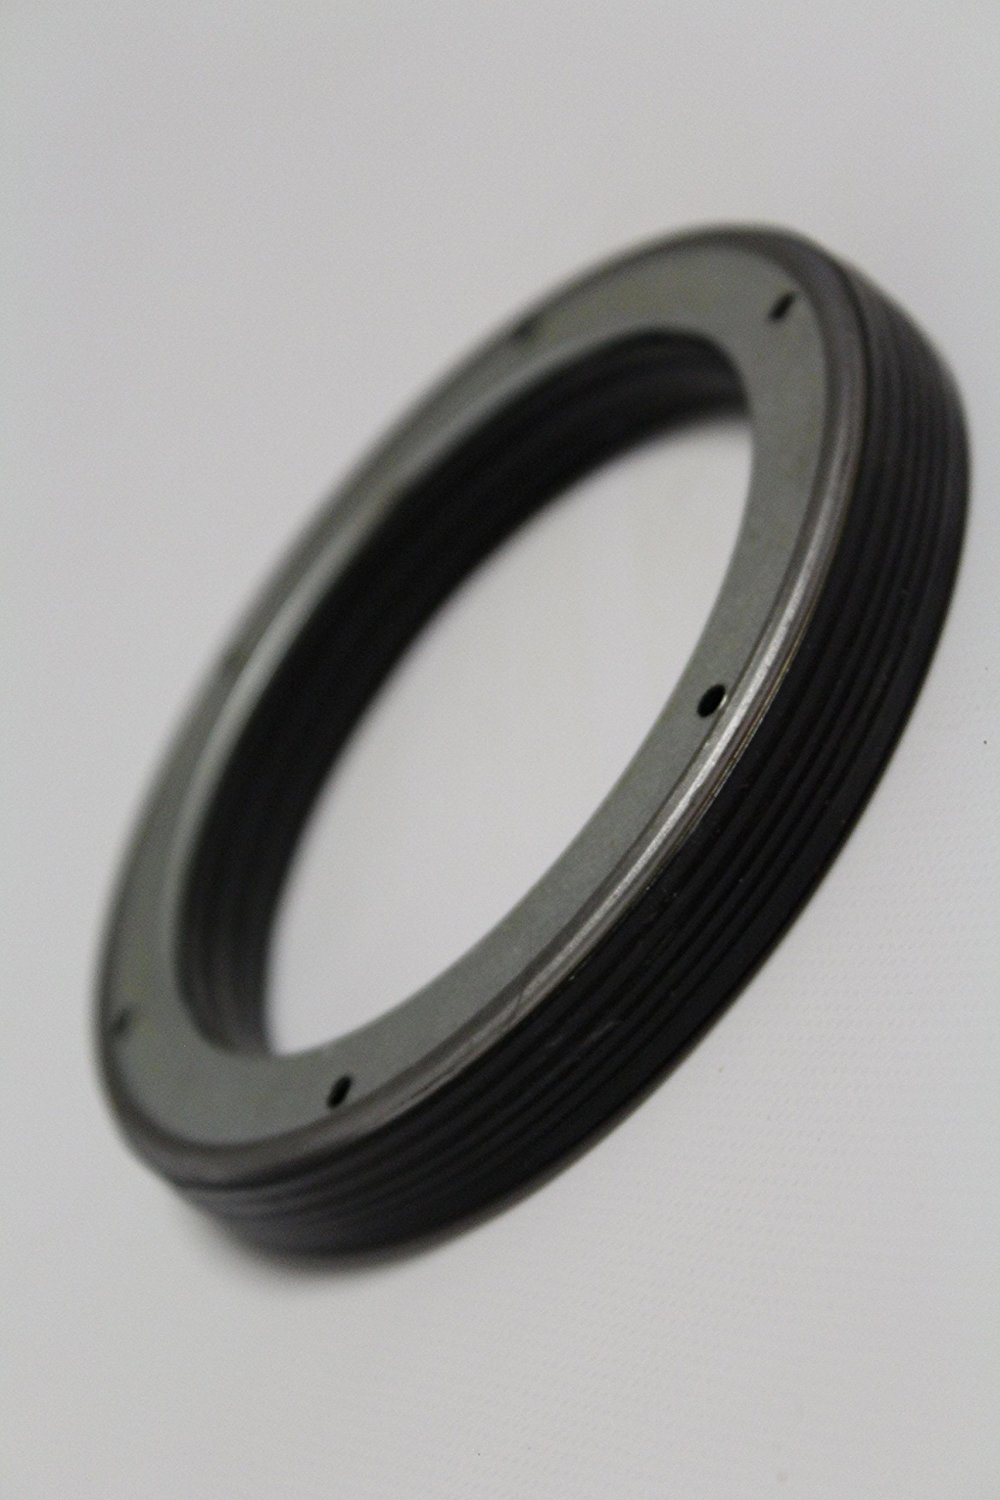 Cheap Trailer Grease Seal, find Trailer Grease Seal deals on